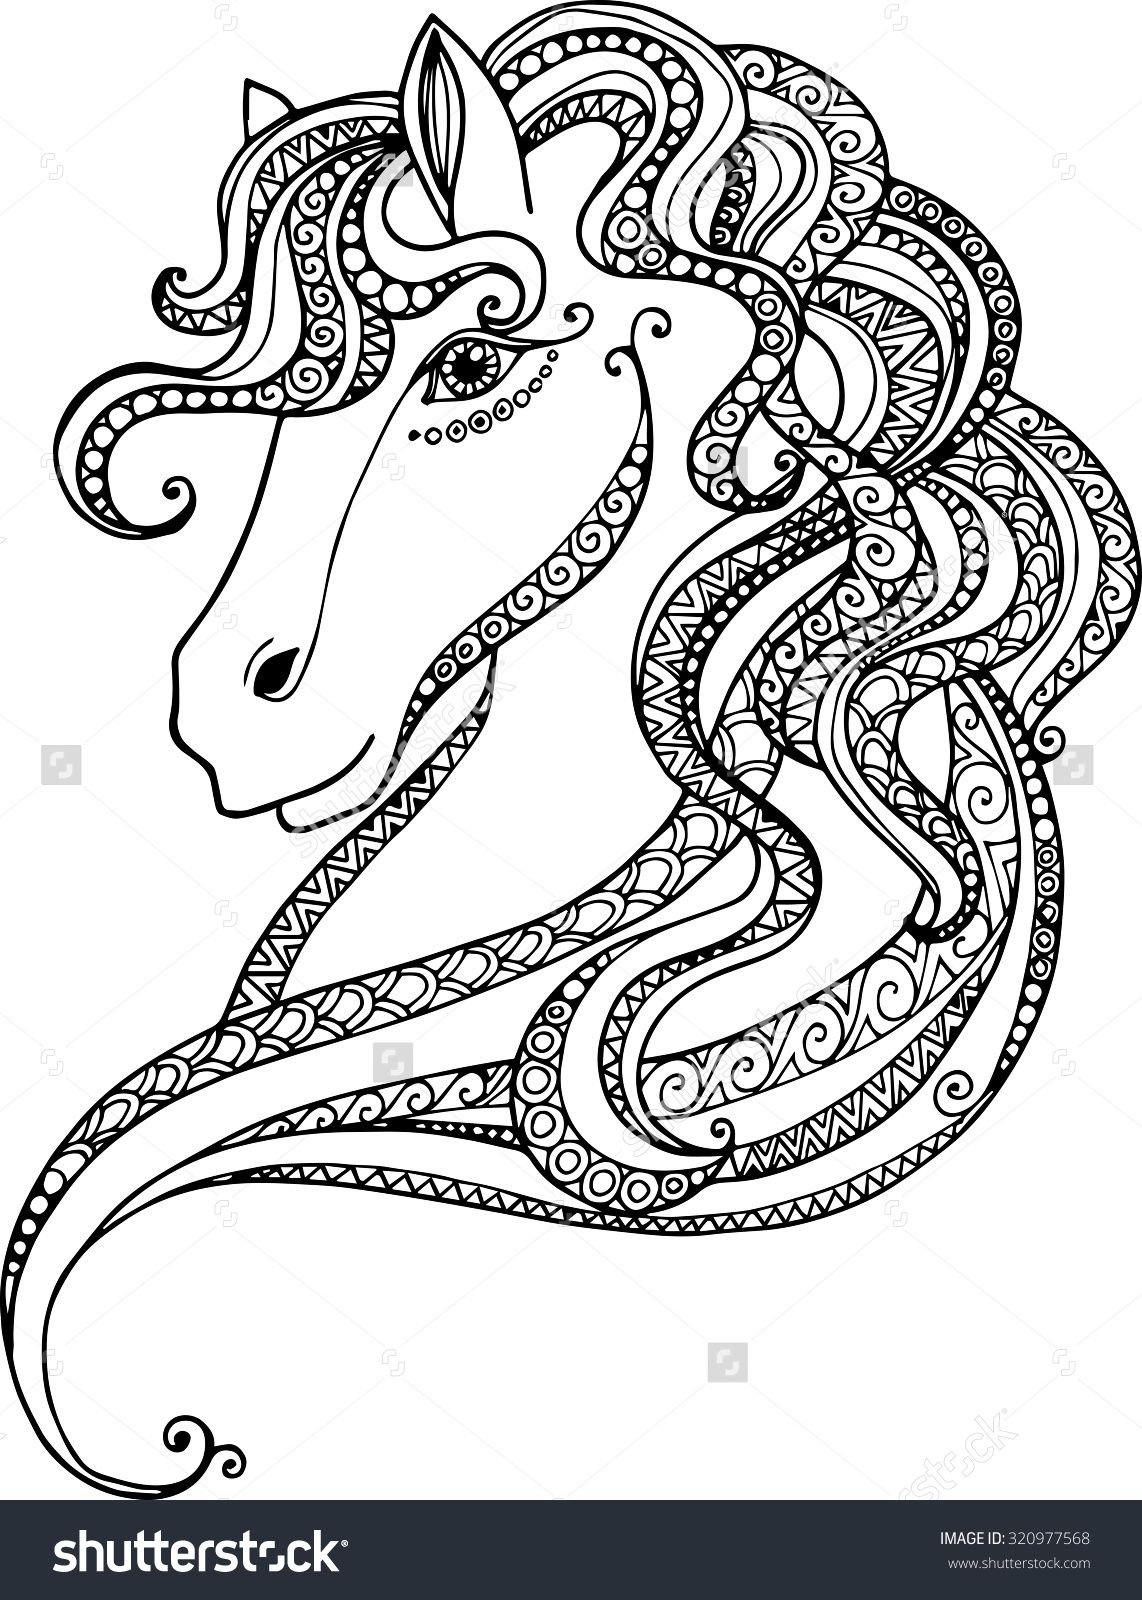 Hand Drawn Decorative Horse Head Illustration Horse